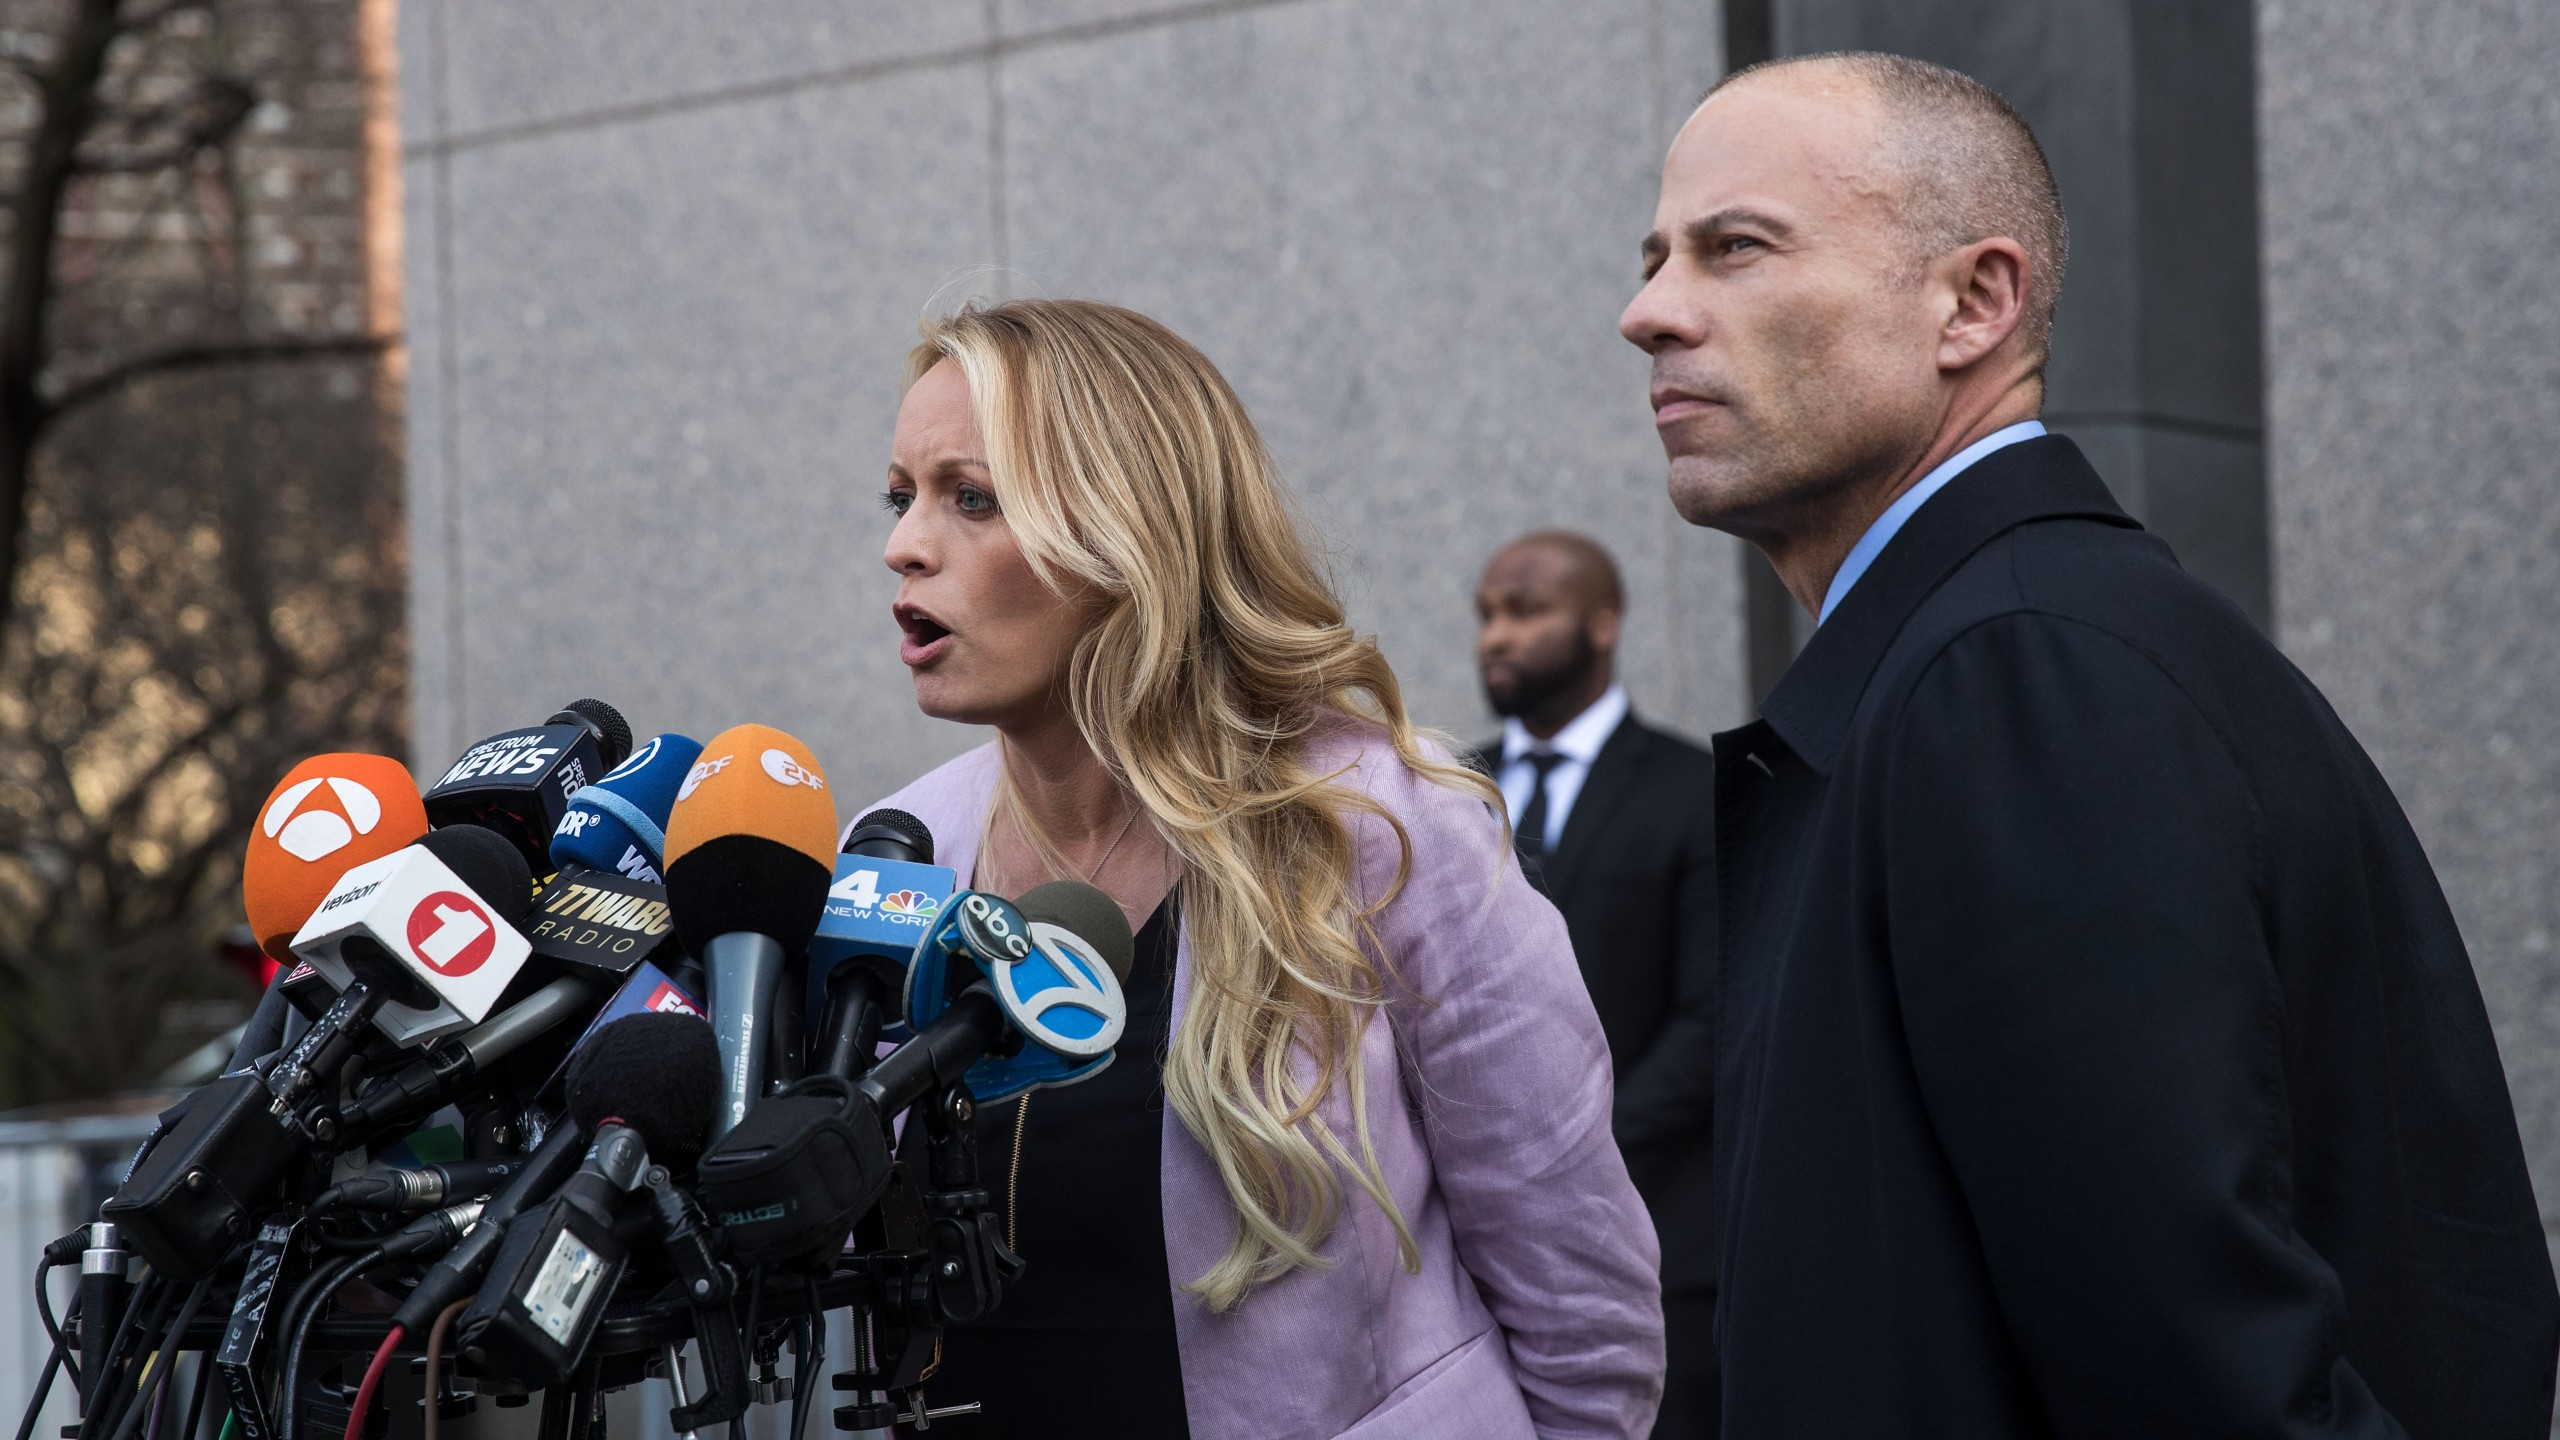 Adult film actress Stormy Daniels, whose legal name is Stephanie Clifford, and Michael Avenatti, her attorney, speak to the media as they exit the United States District Court Southern District of New York for a hearing related to Michael Cohen, President Trump's longtime personal attorney and confidante, on April 16, 2018, in New York City. (Credit: Drew Angerer/Getty Images)